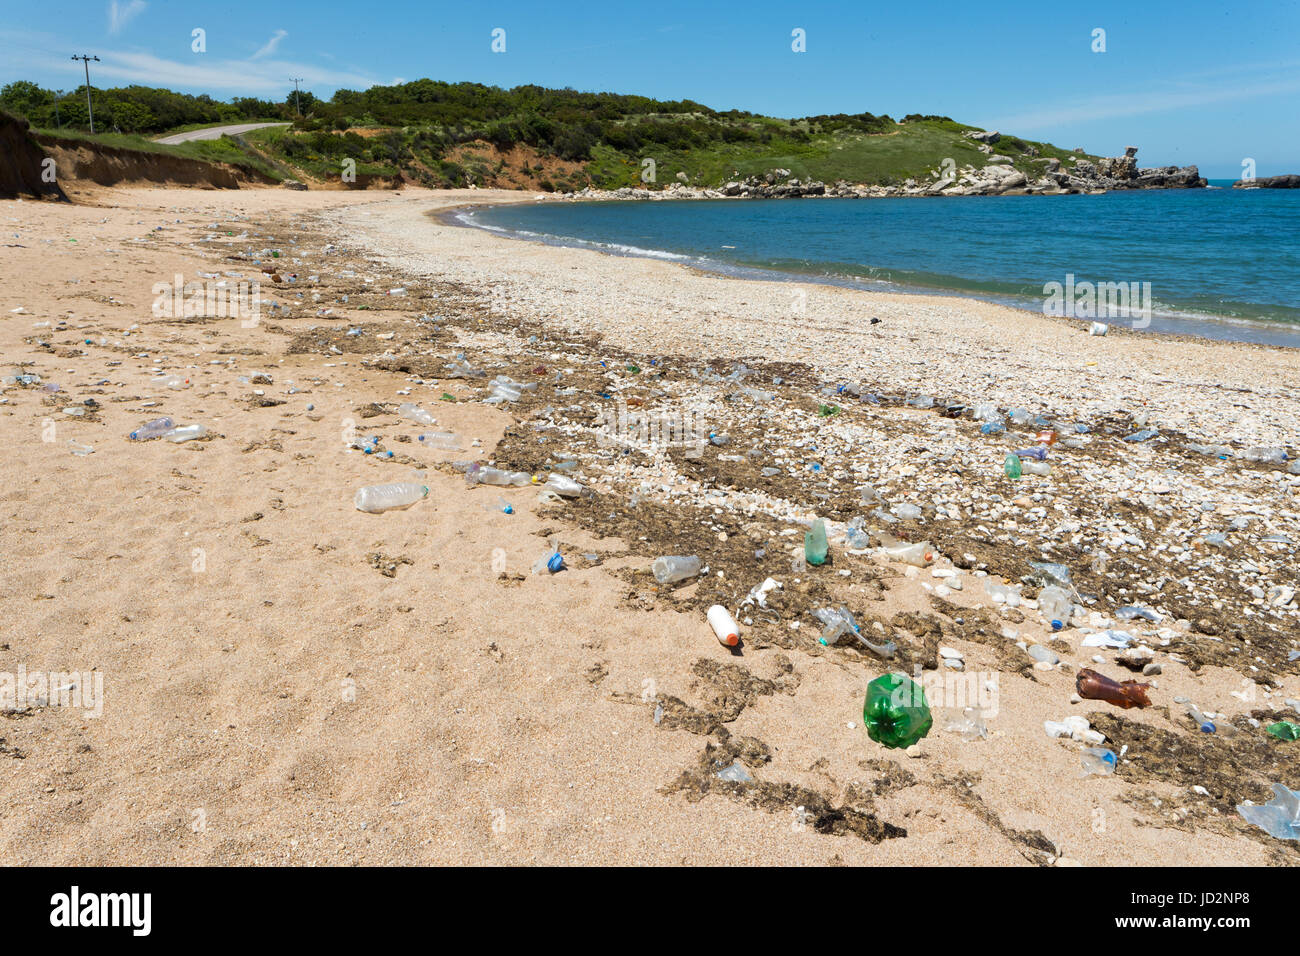 Garbage Pollutions on Dirty Beach - Stock Image